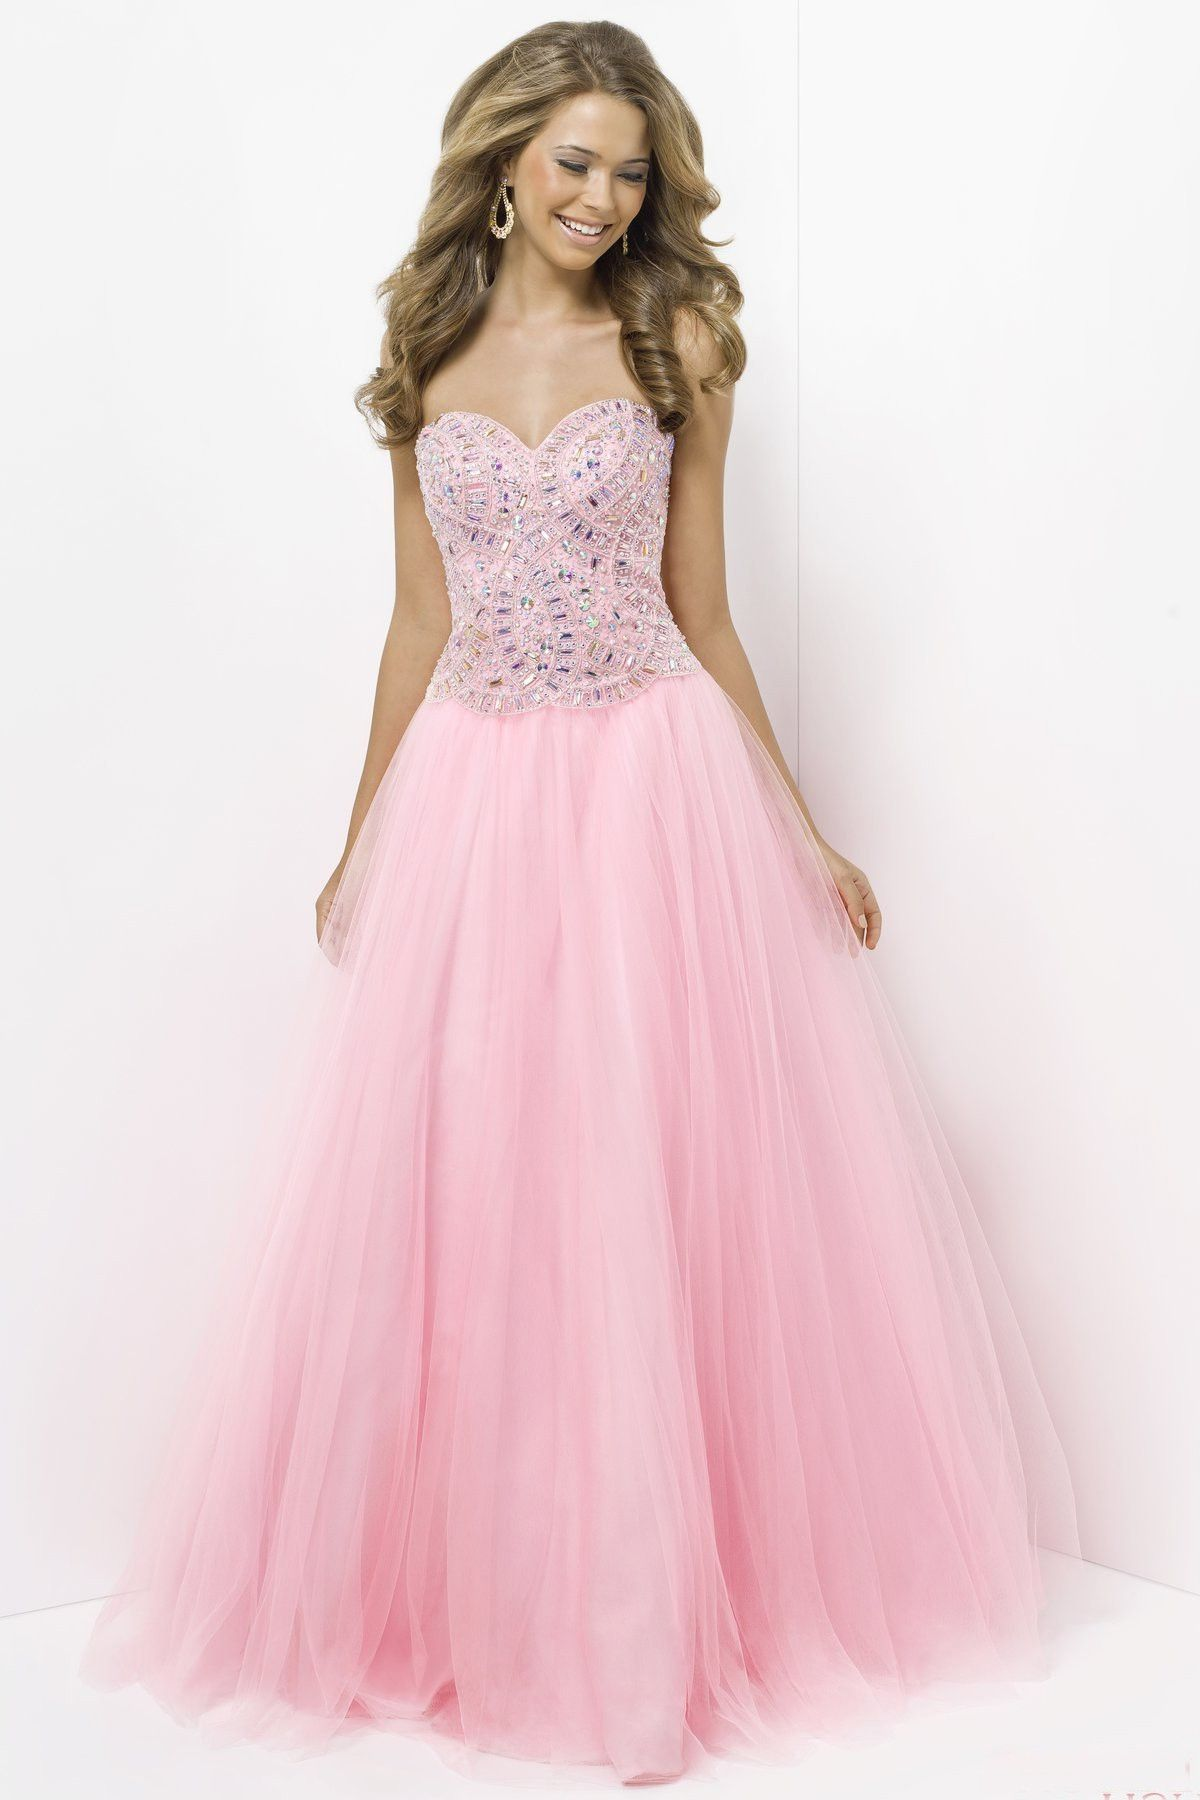 Beaded Tulle Ball Gown Sweetheart Floor-length Prom Dress(PD0546 ...